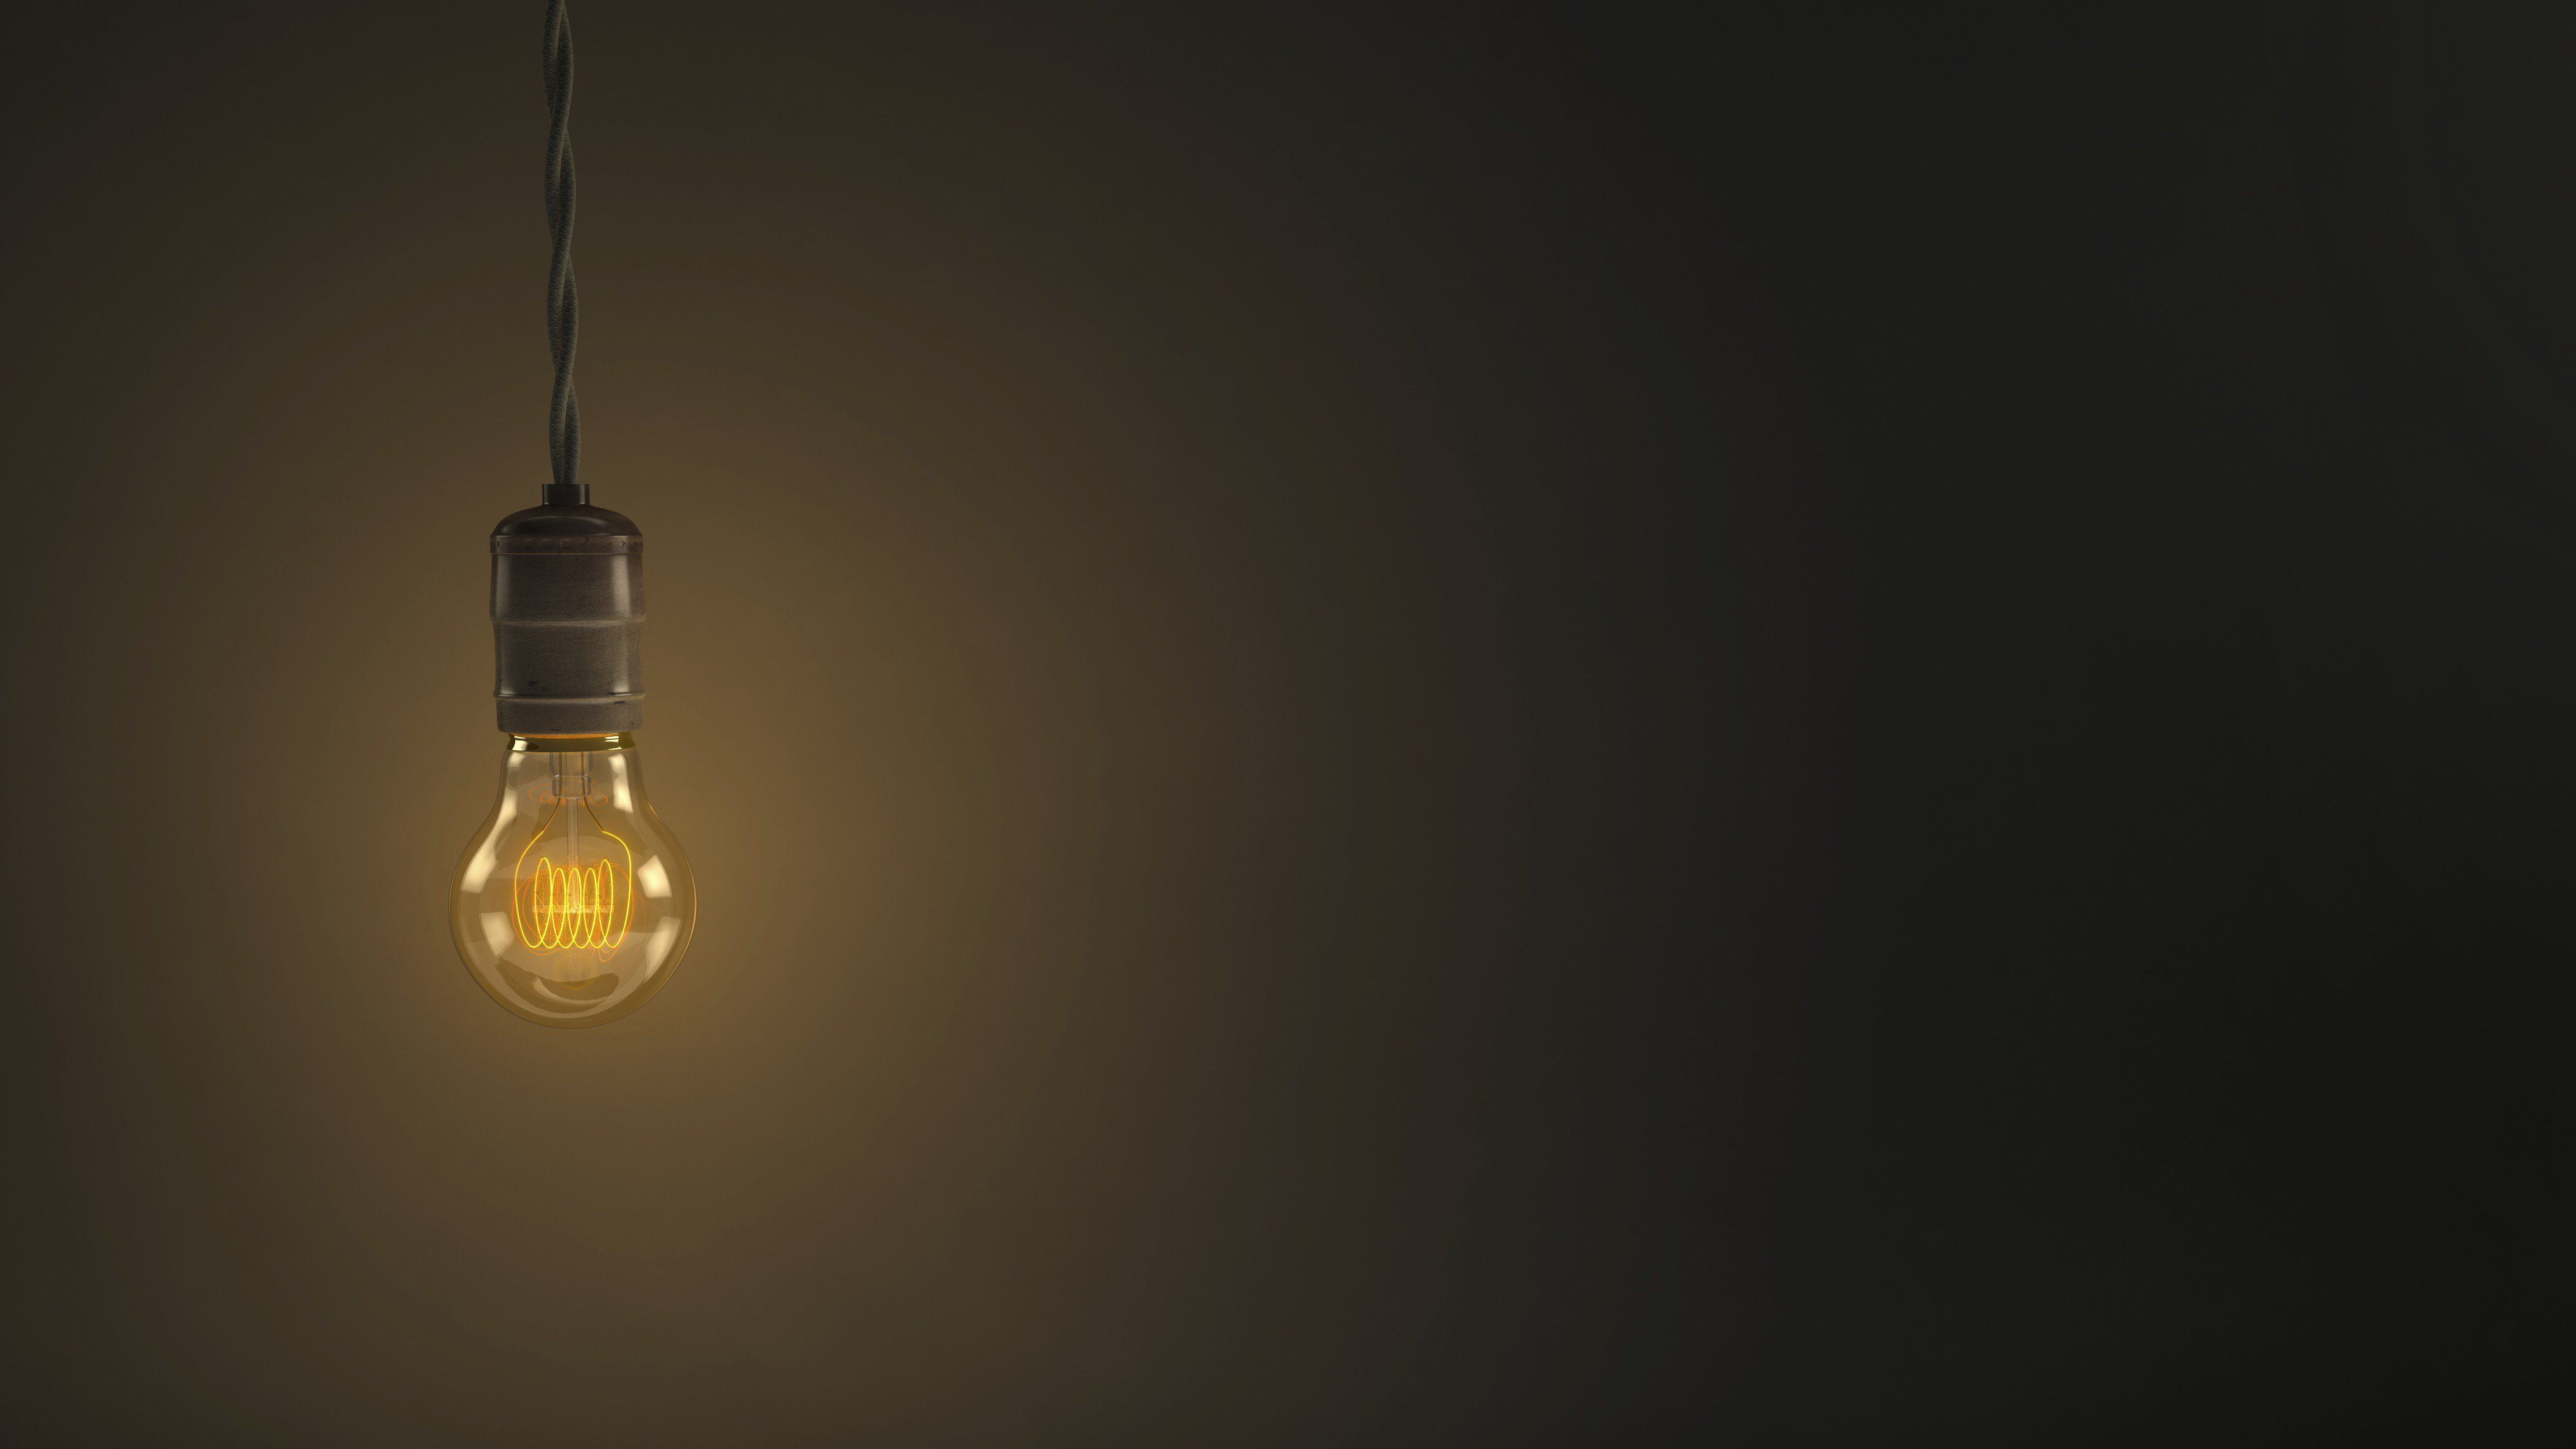 170 HD and QHD wallpapers of beautiful lights and light bulbs ...